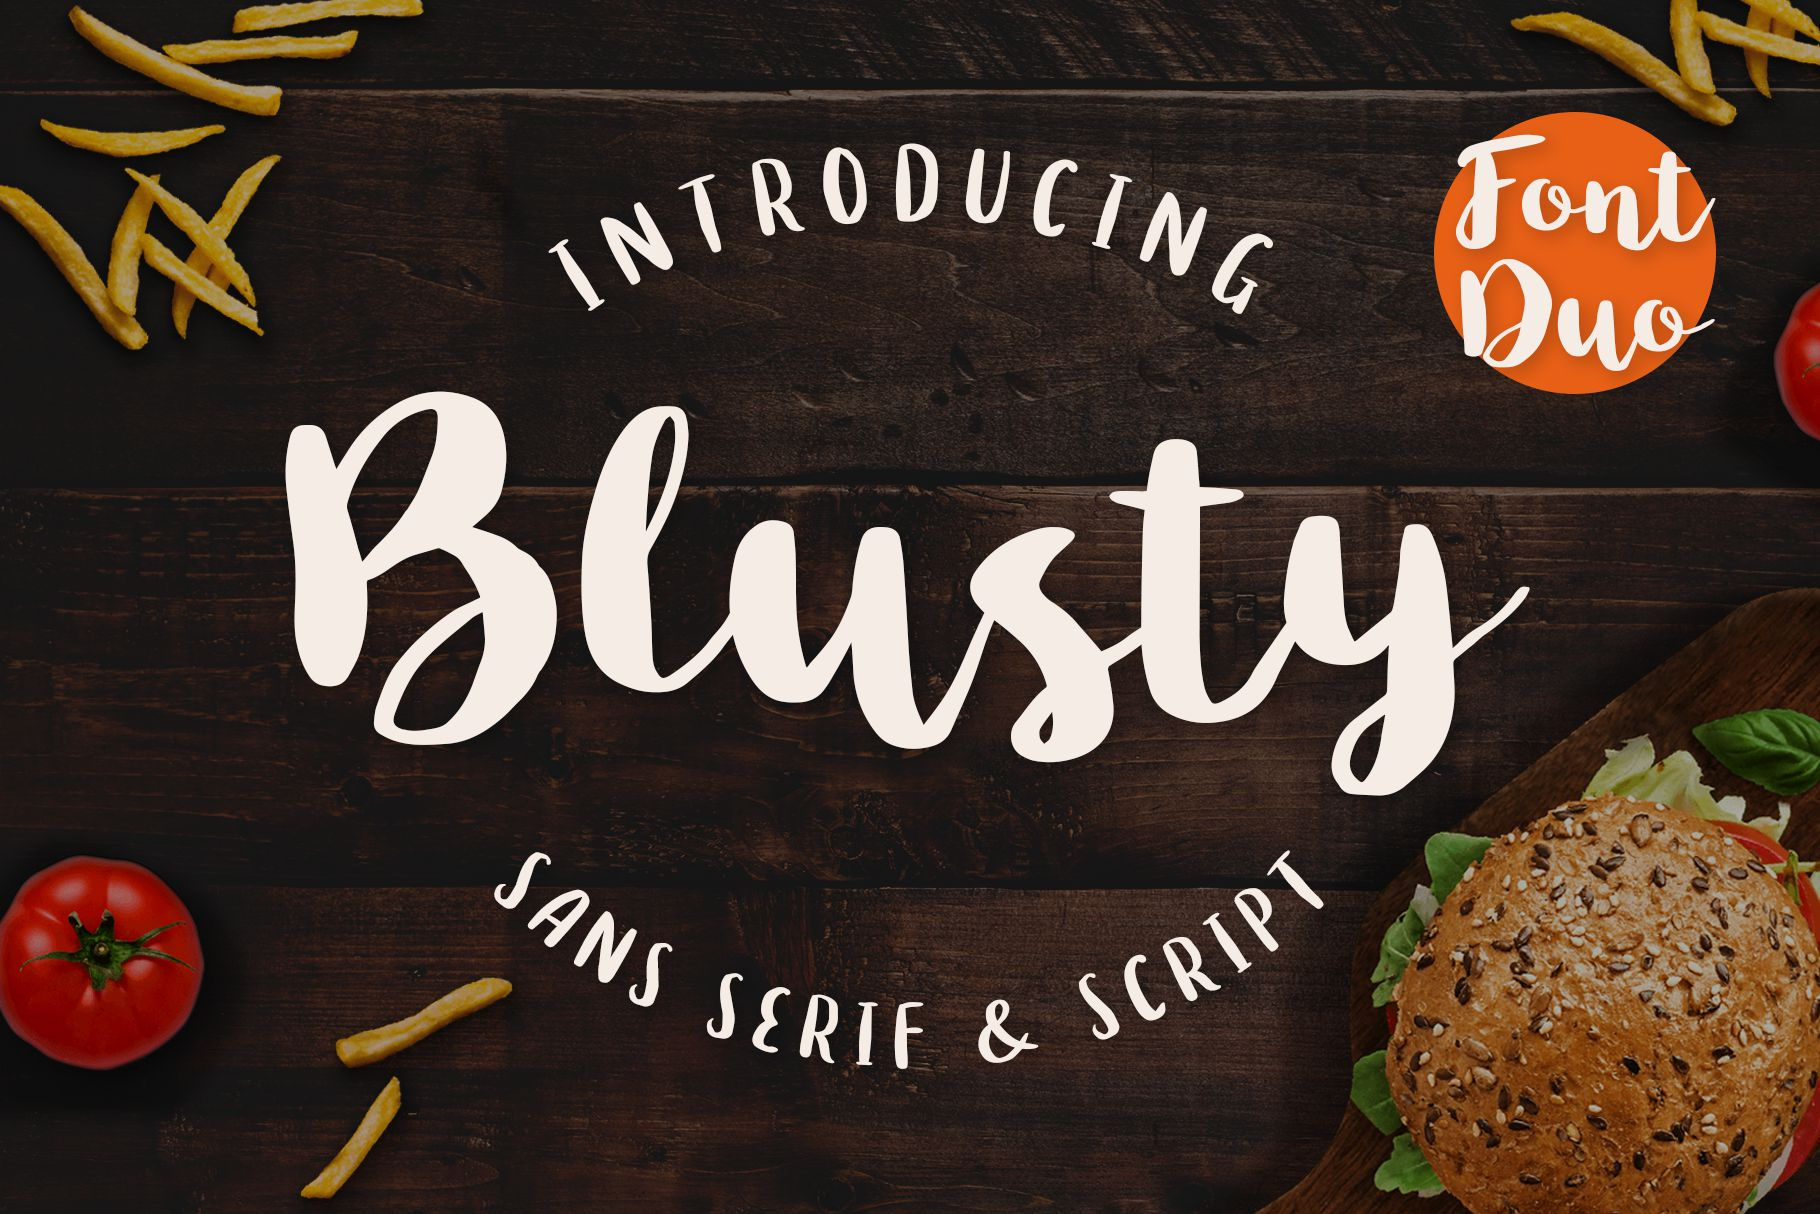 Free Download: Blusty Font